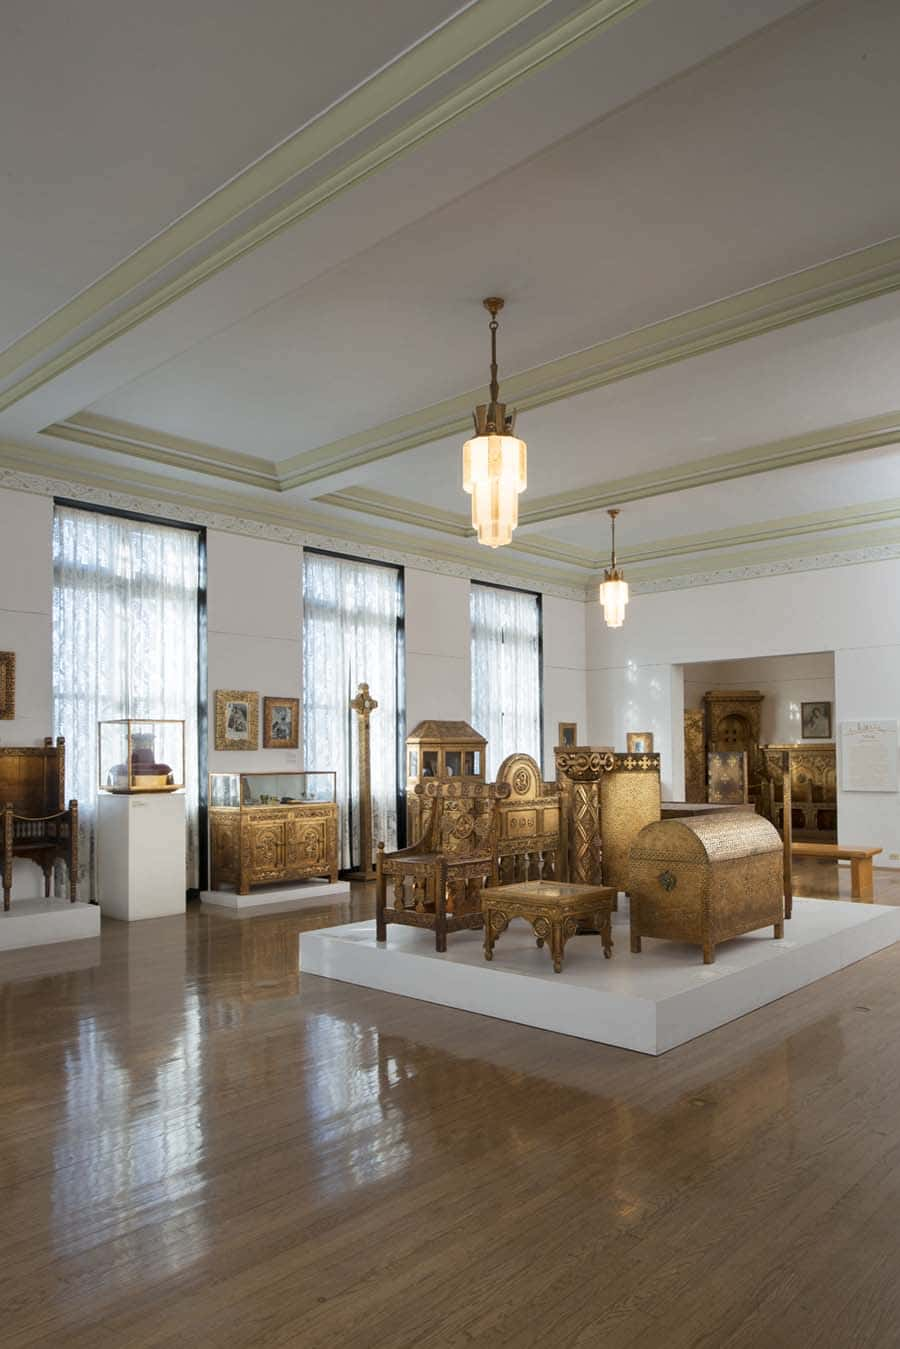 Make a Gift - Maryhill Museum - Columbia Gorge